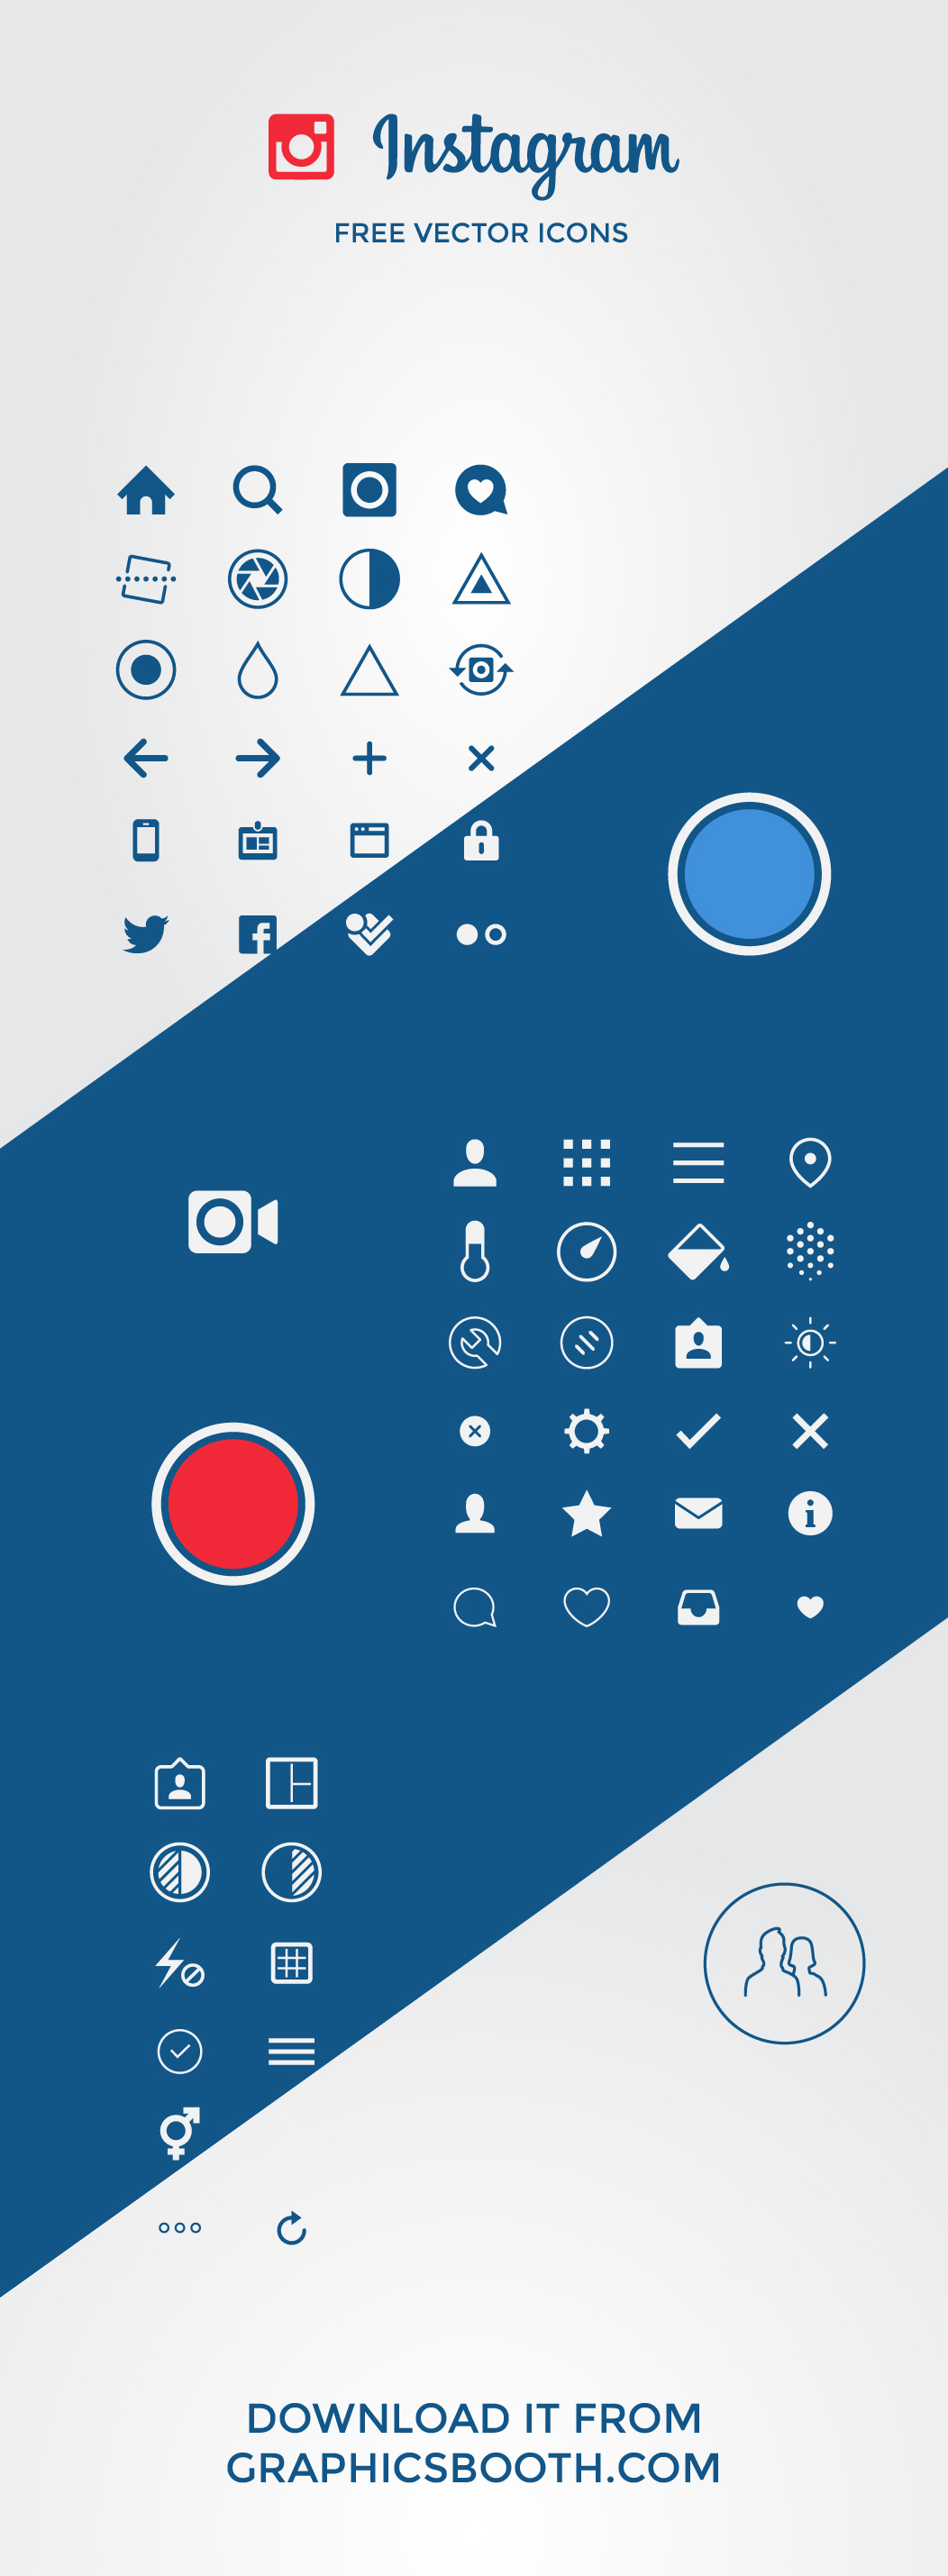 1052x2859 Free Instagram Vector Icons On Behance